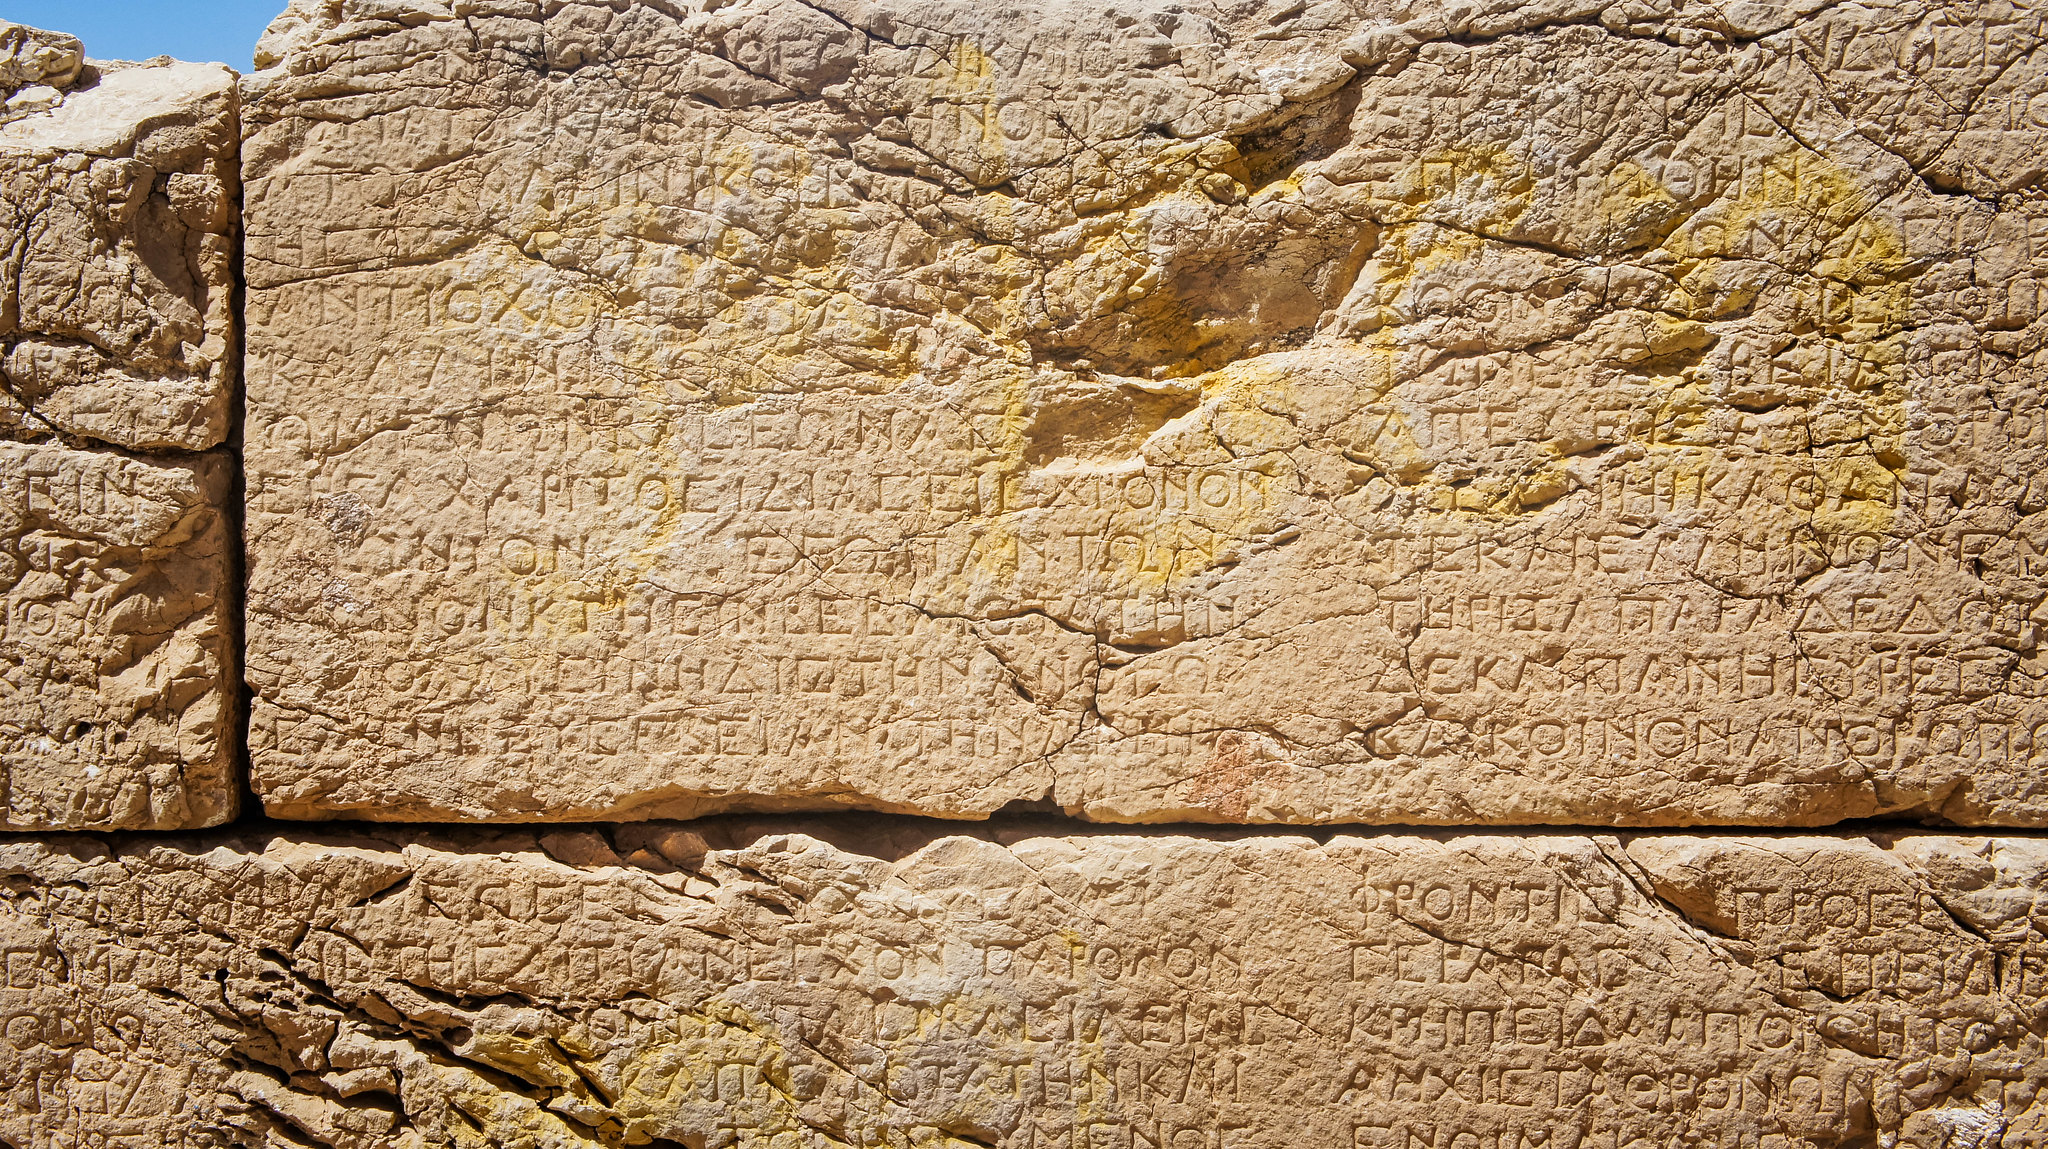 Always study everything from all sides, there may just be a giant inscription hiding!